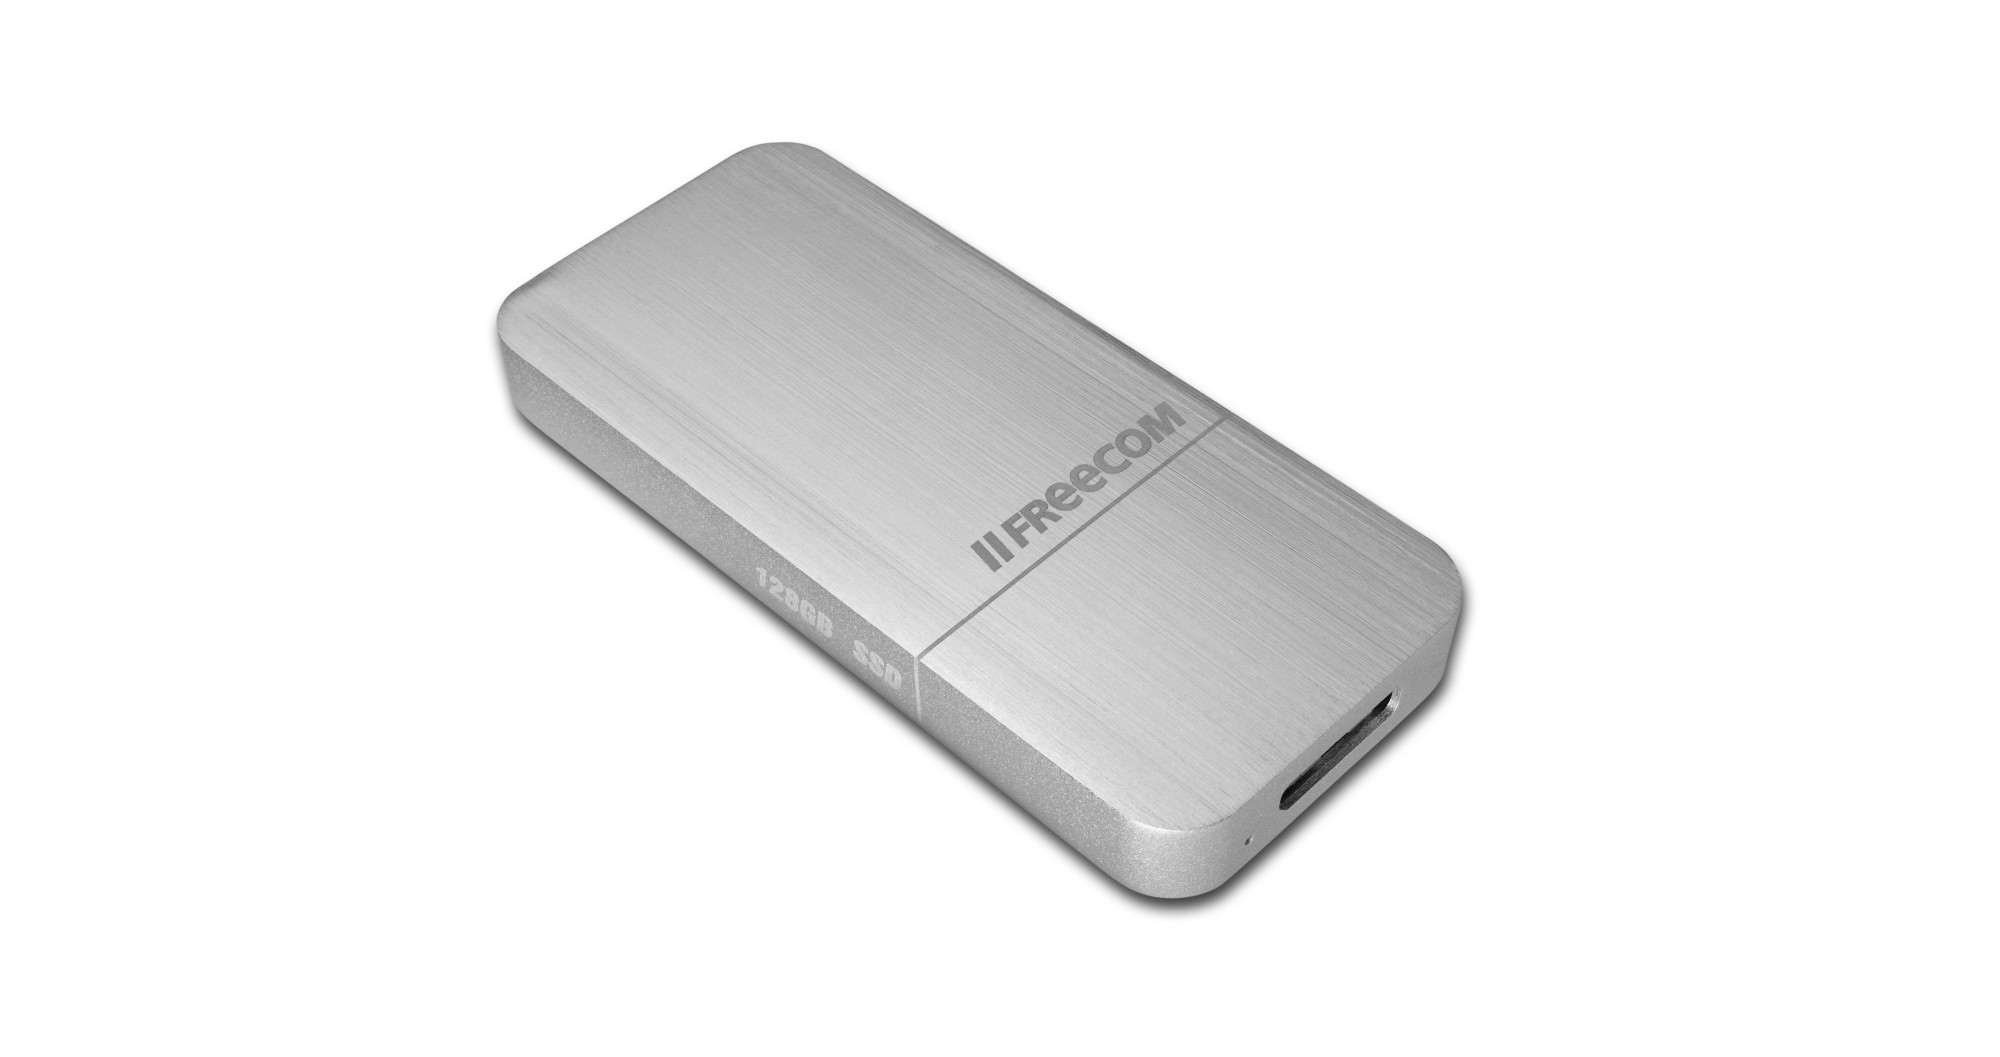 FREECOM 56314 256GB SILVER EXTERNAL SOLID STATE DRIVE